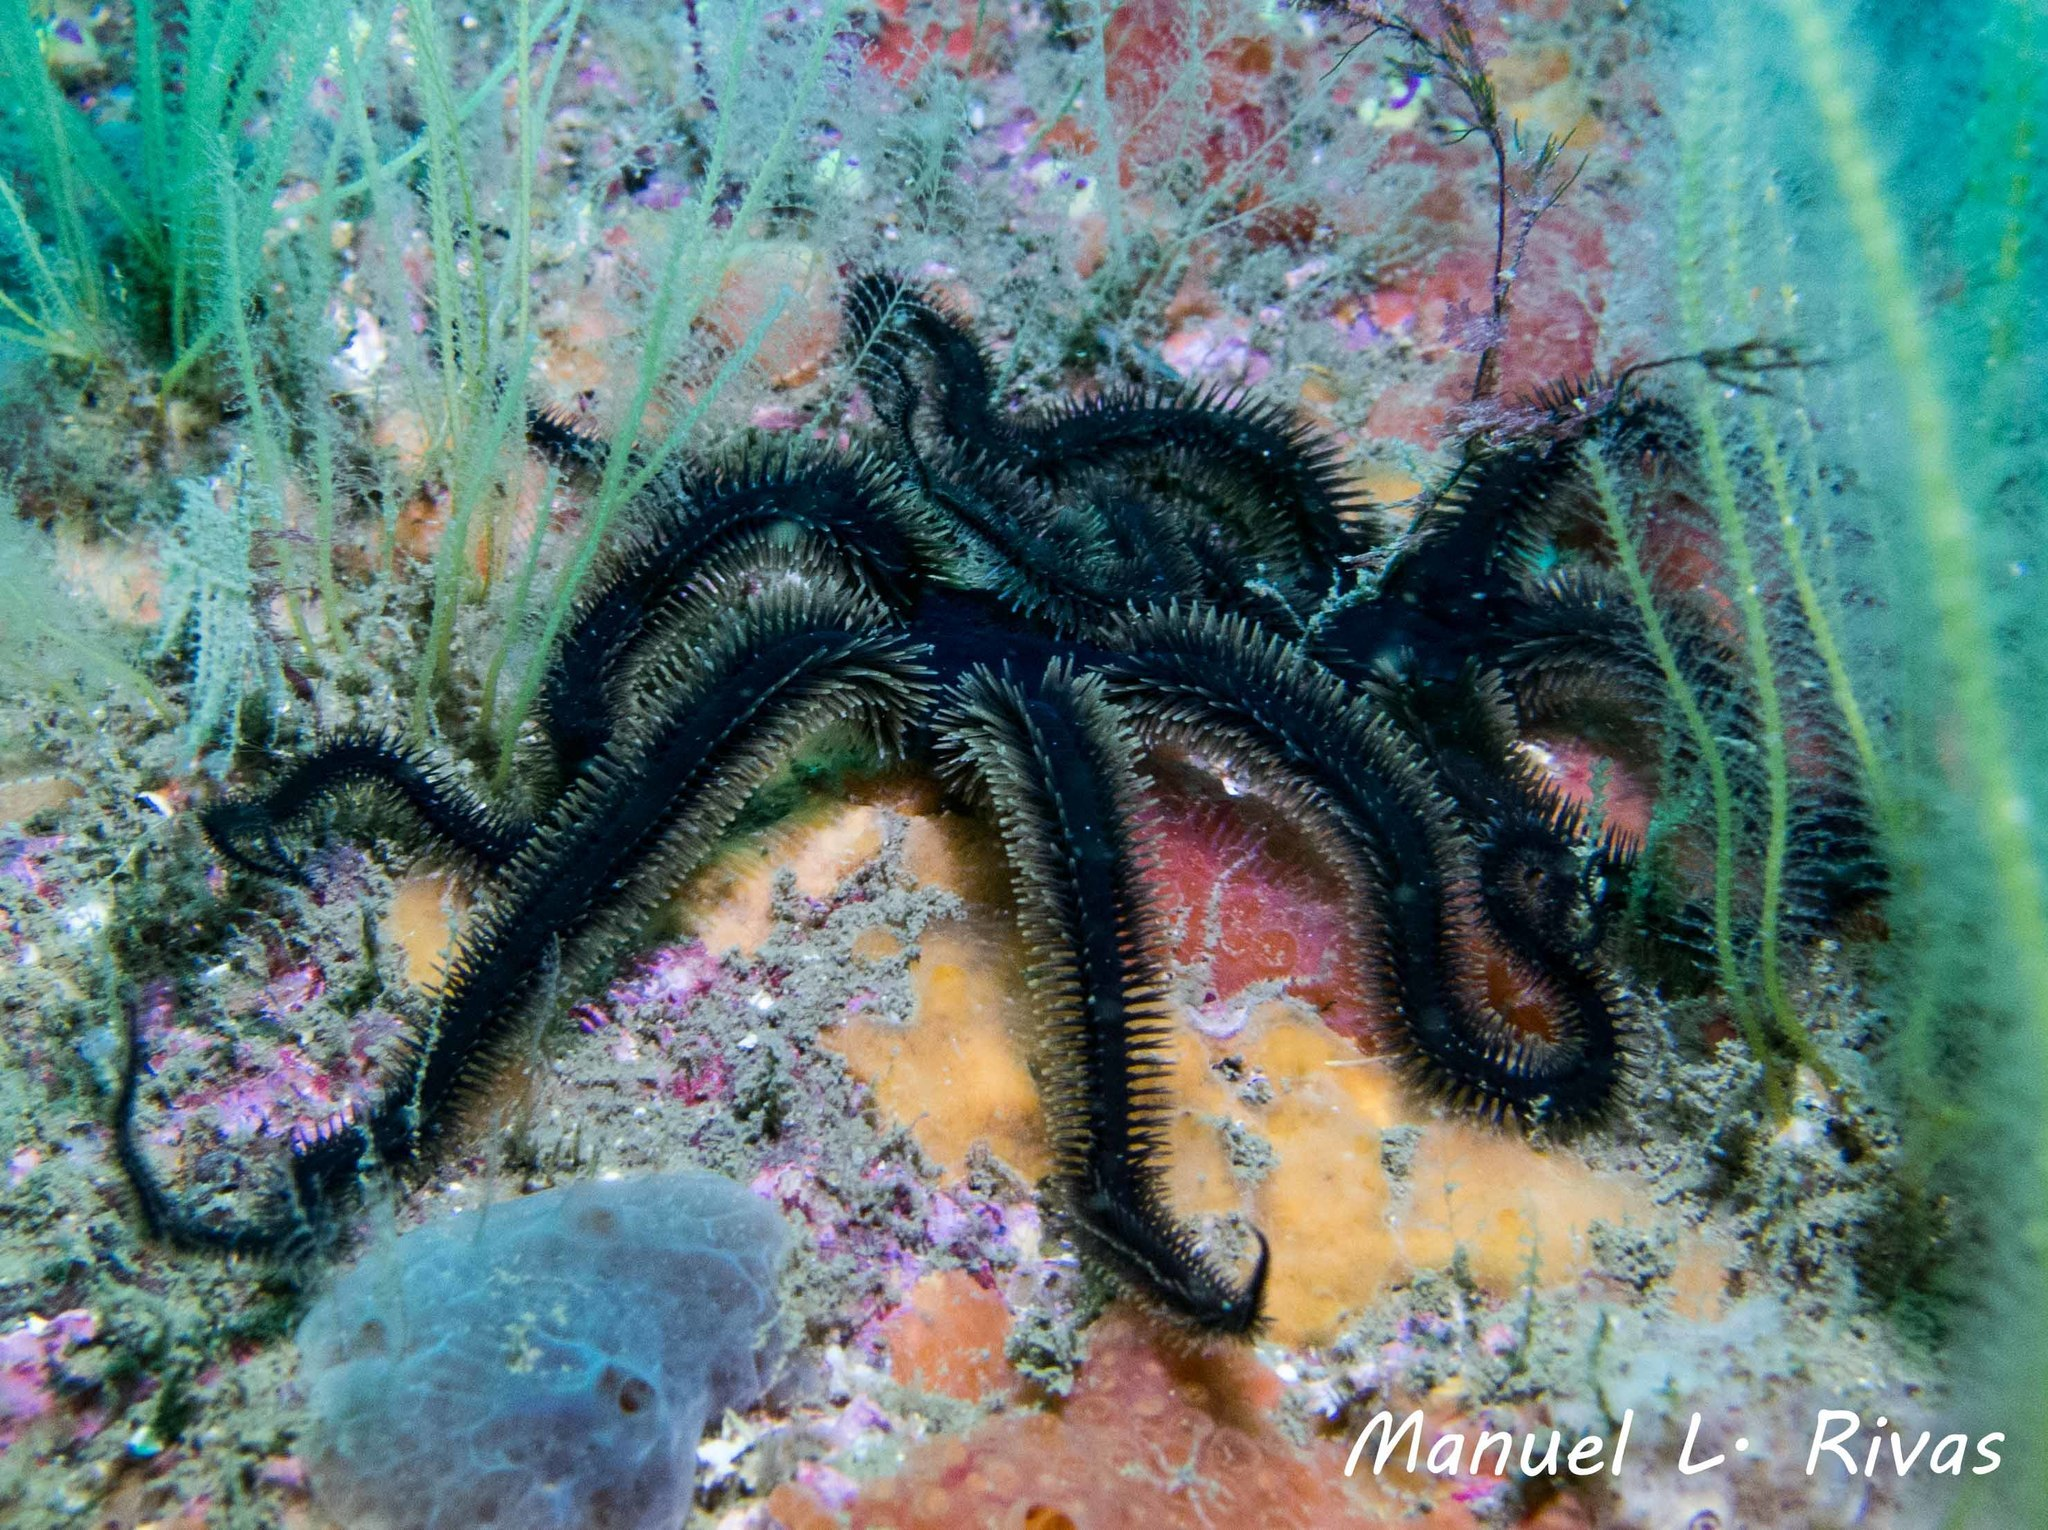 Image of black brittle star